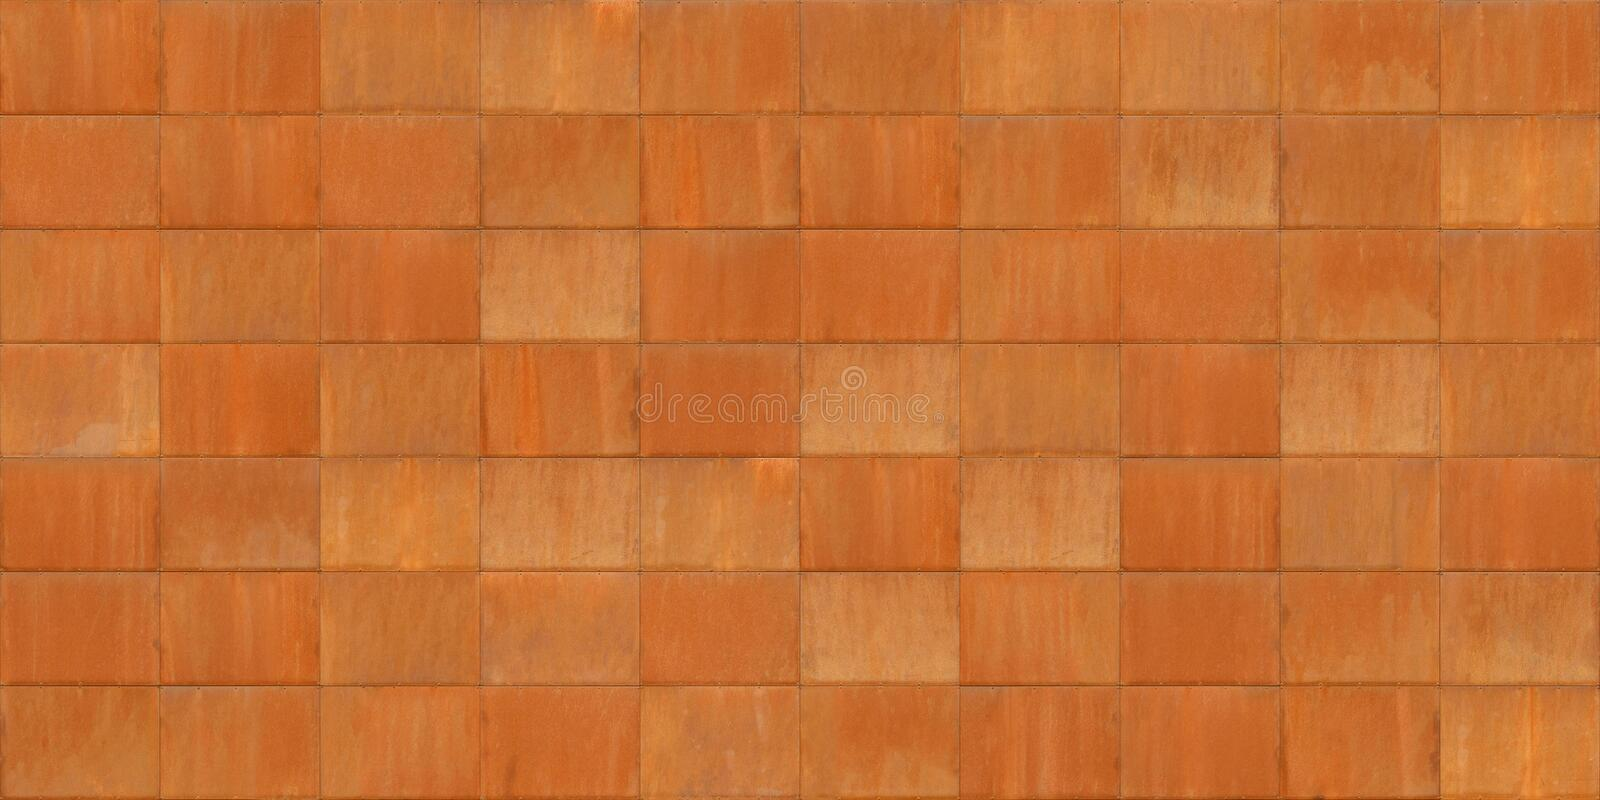 Seamless Texture Of Rusted Cor Ten Metal Sheets Stock